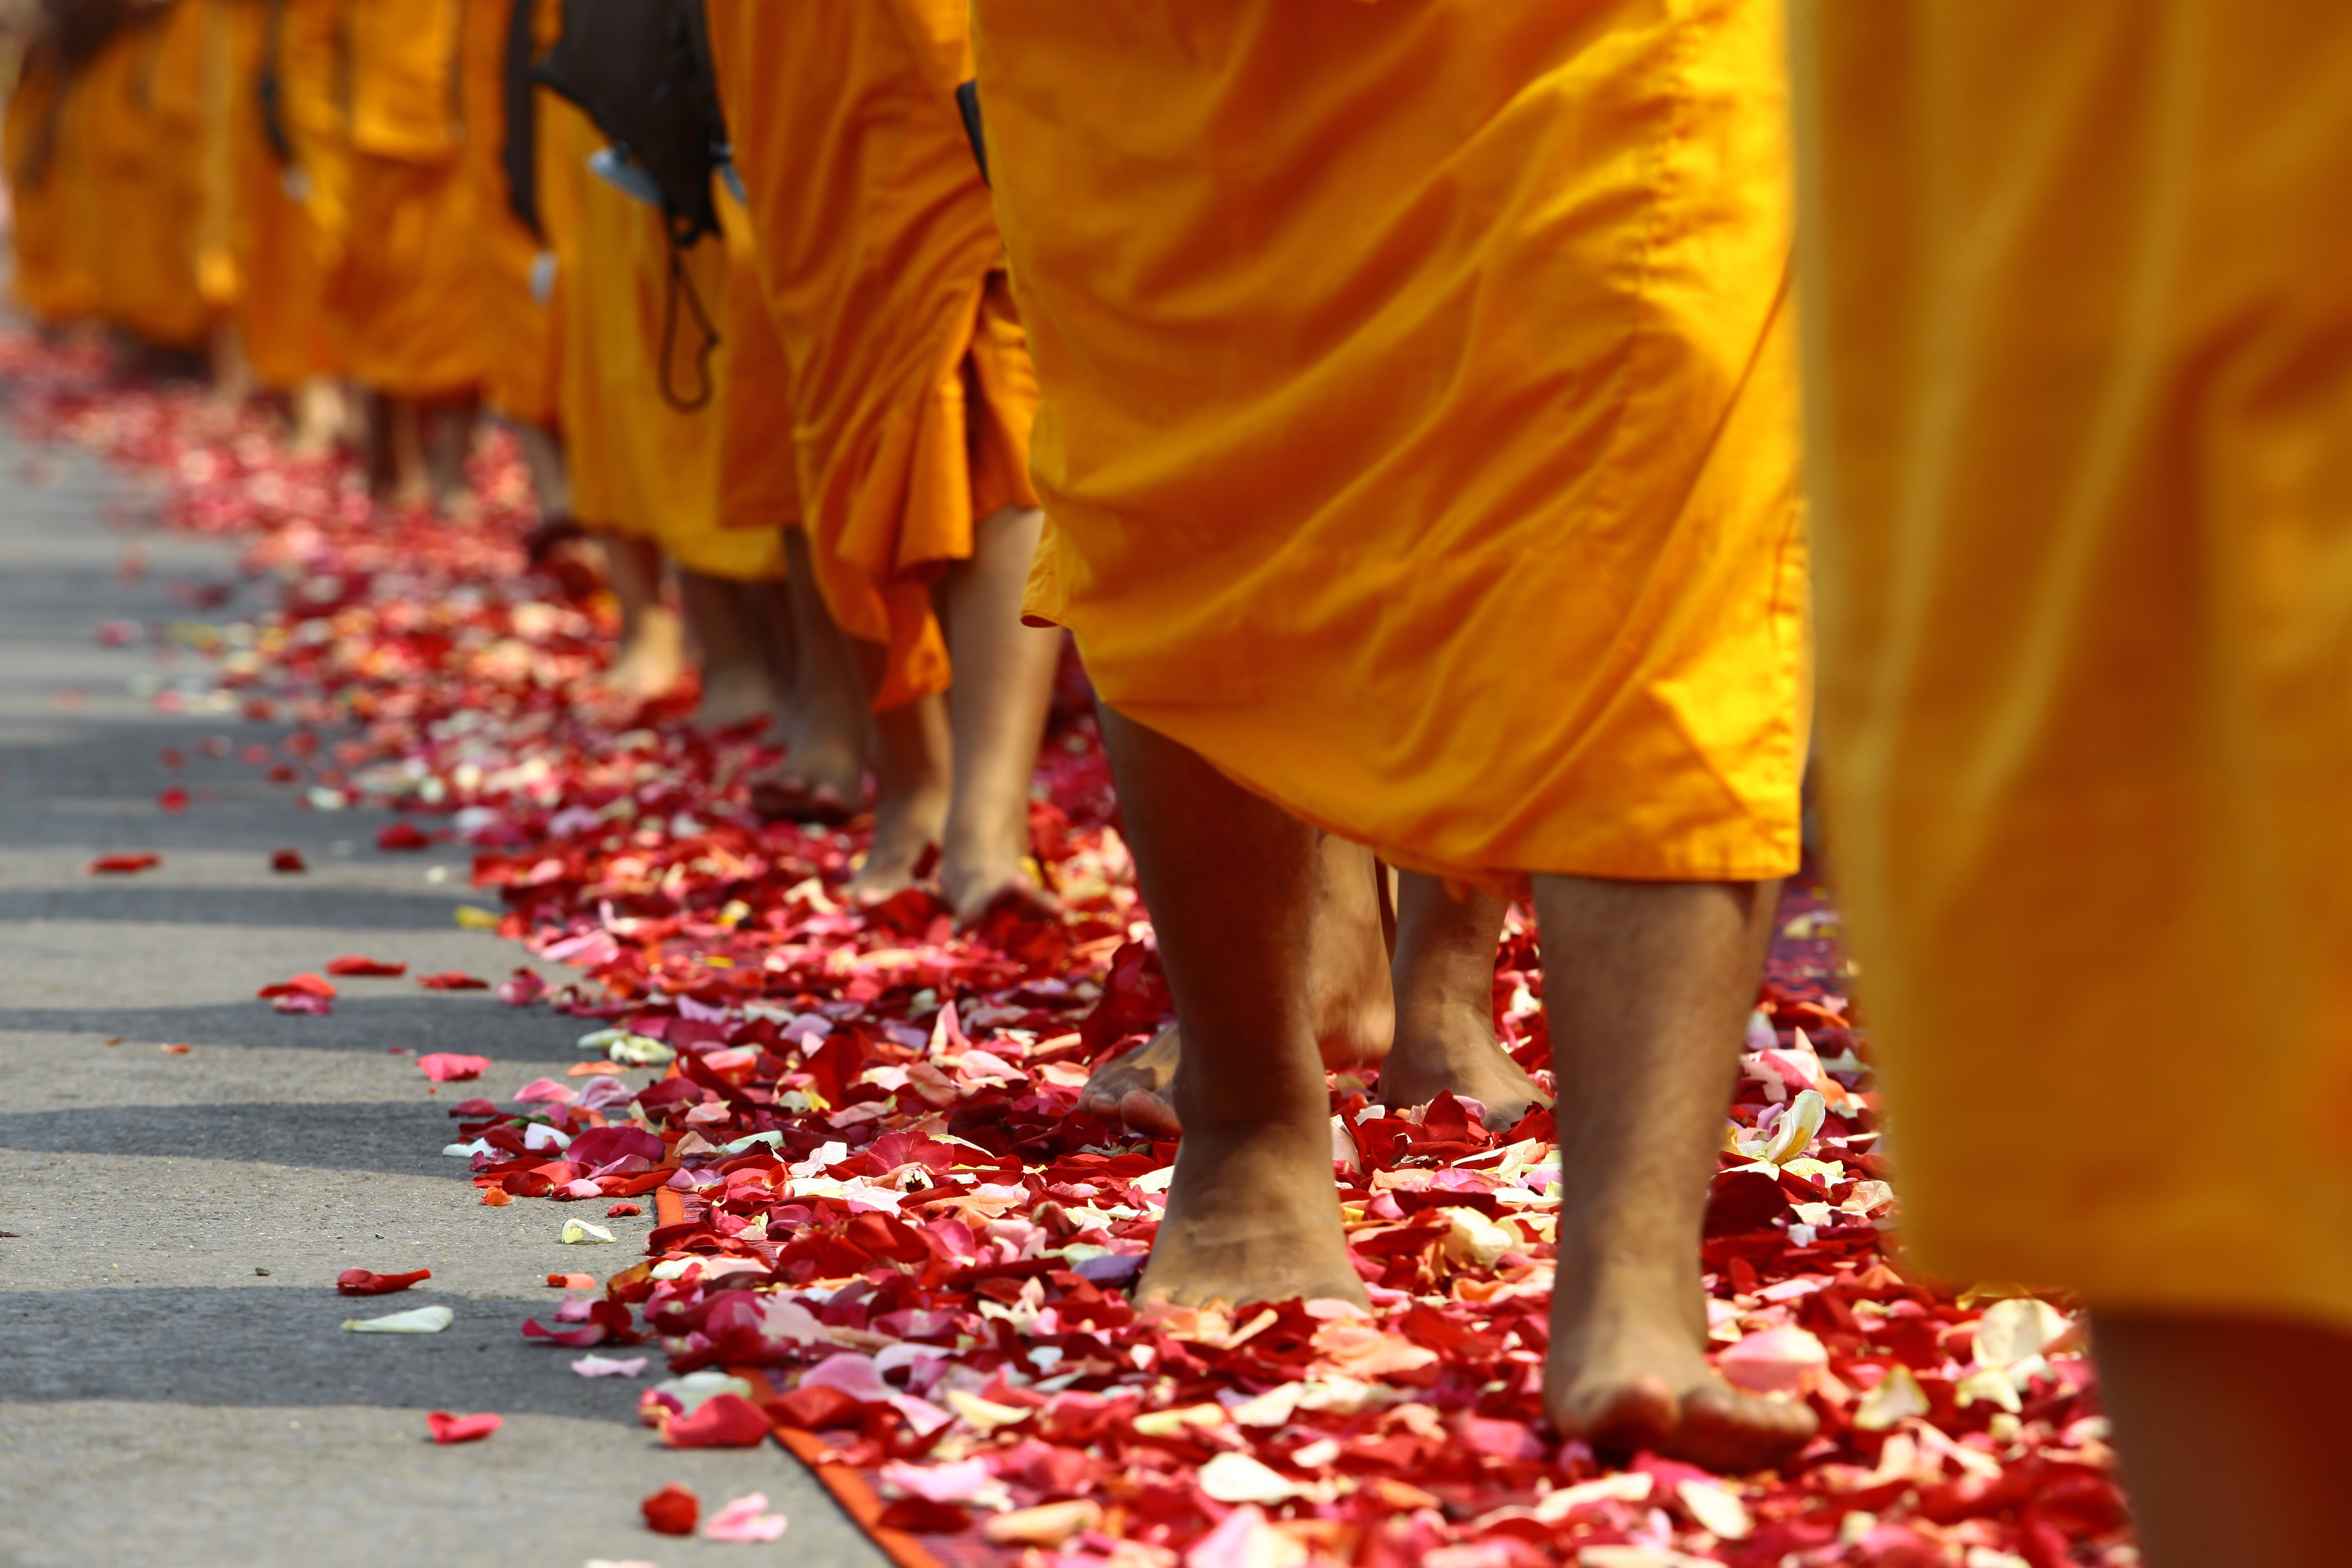 monk people walking on red and white flower petals image Peakpx 5616x3744